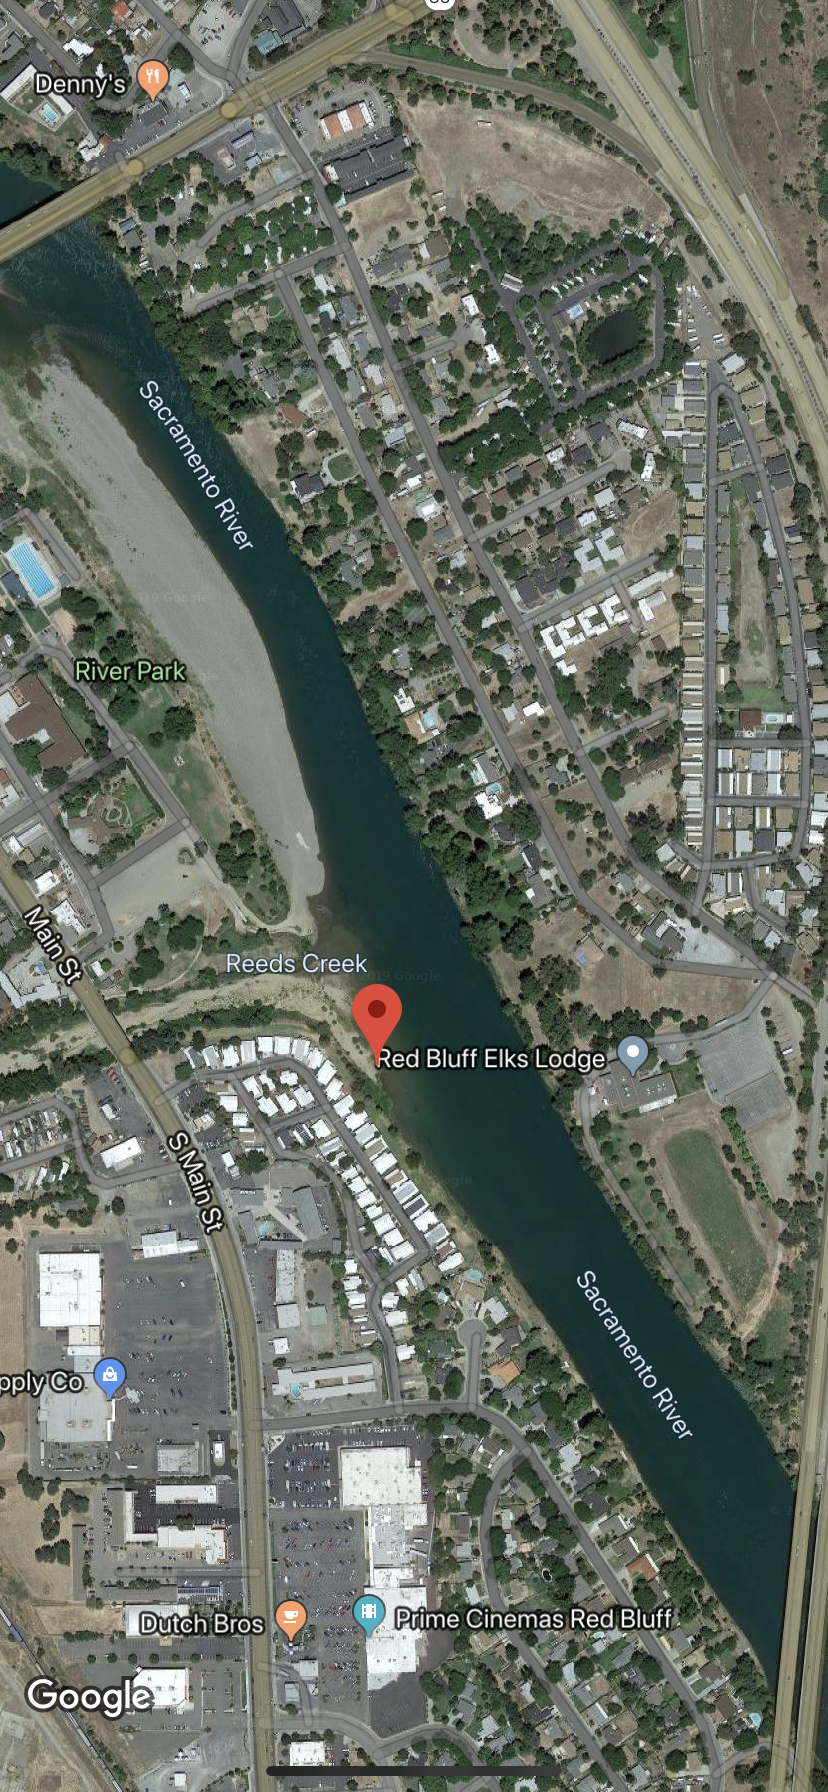 This image screenshot of Google Maps shows the location of a large school of American Shad. That can be easily targeted by bank anglers, or private boat owners. For the dropped pins exact location visit Google Maps  https://goo.gl/maps/SLv3MMPtr5Pf2YAB9  .